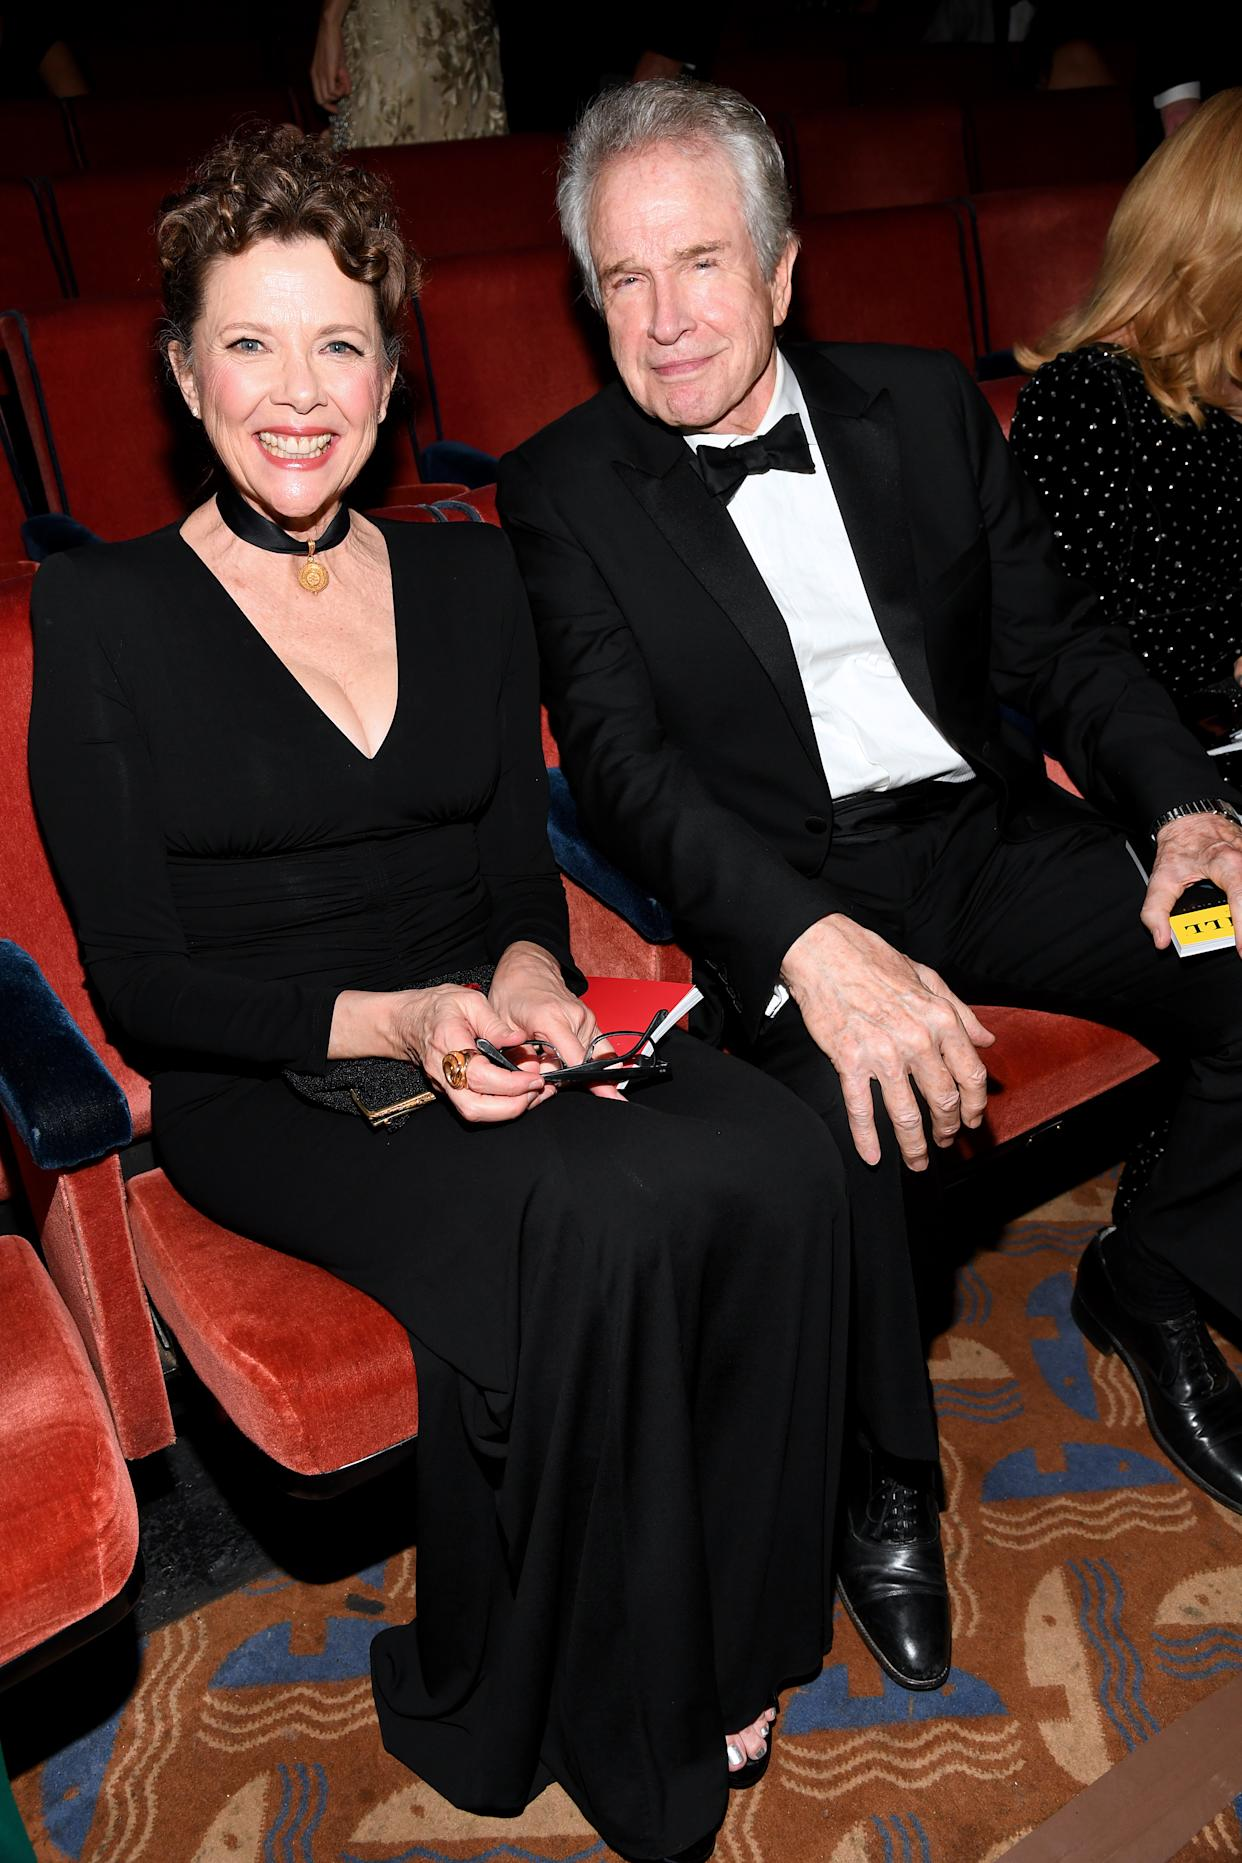 NEW YORK, NEW YORK - JUNE 09: Annette Bening and Warren Beatty  attend the 73rd Annual Tony Awards at Radio City Music Hall on June 09, 2019 in New York City. (Photo by Kevin Mazur/Getty Images for Tony Awards Productions)